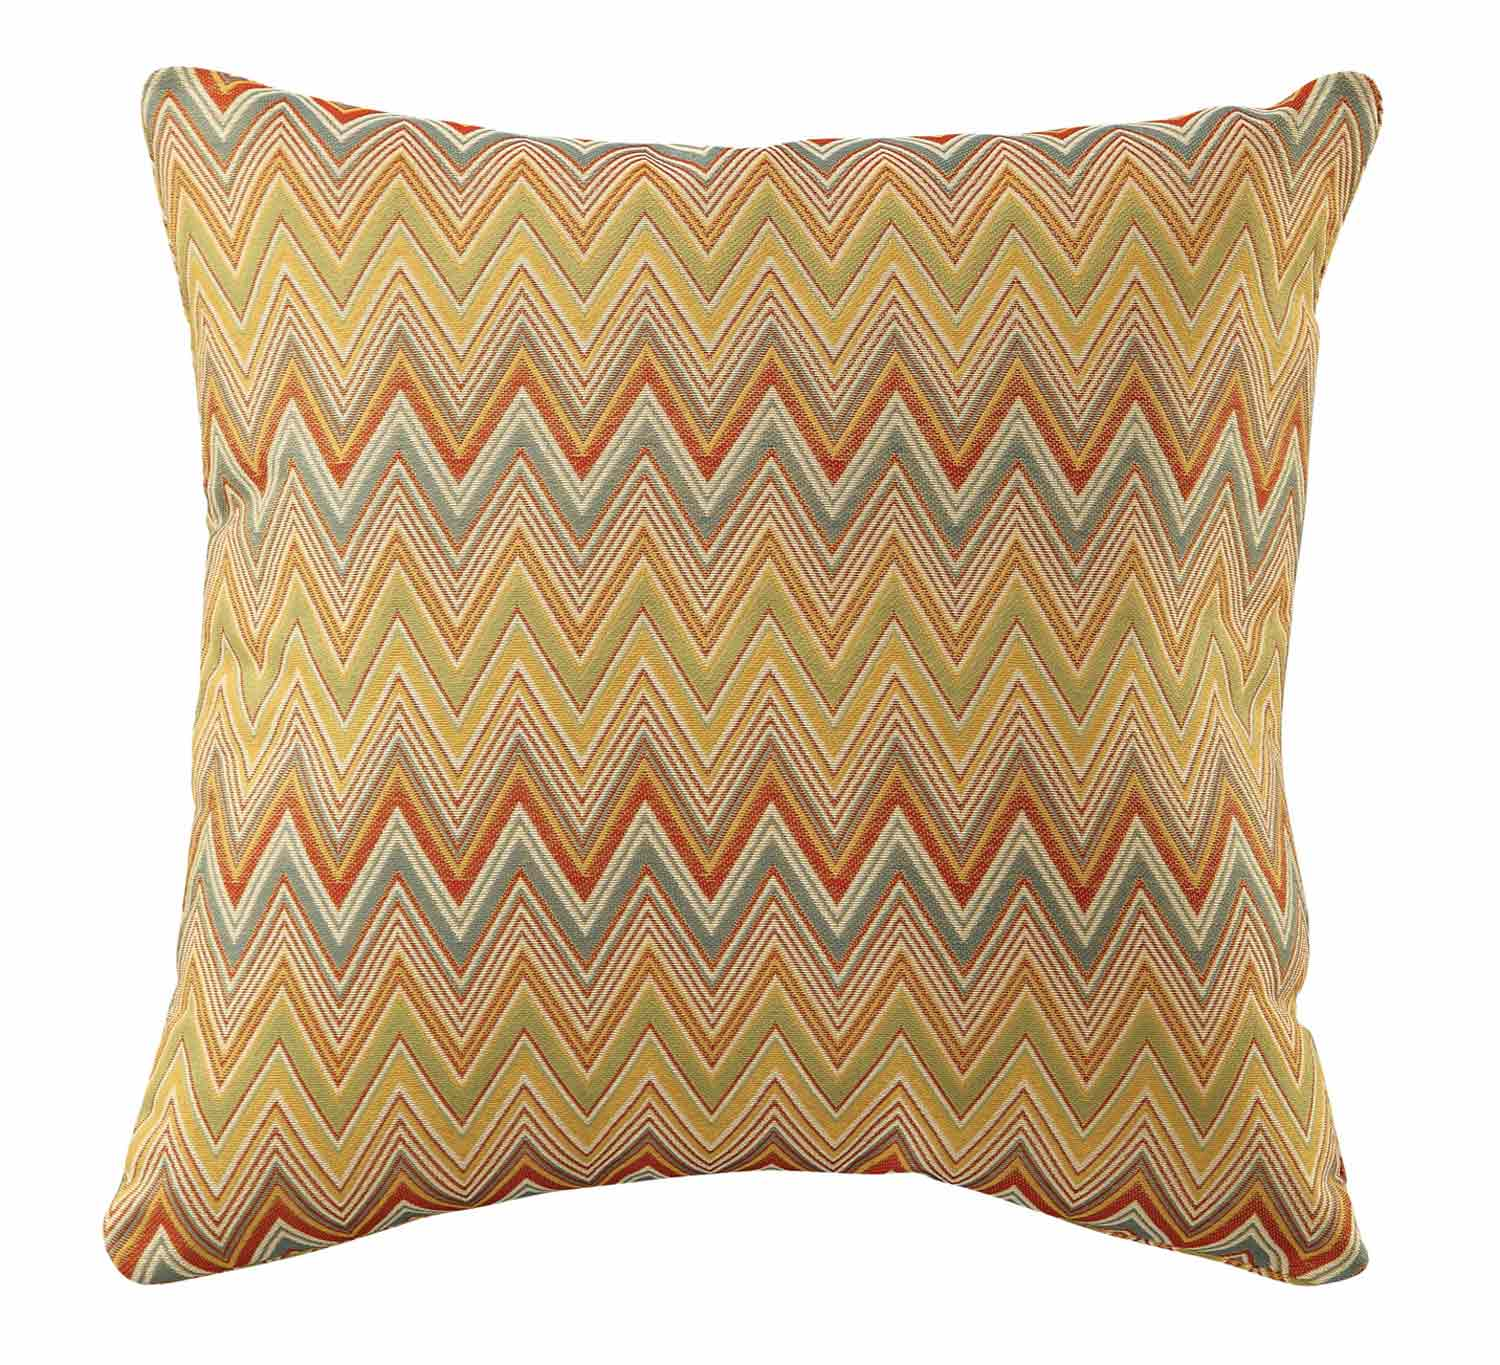 905094 Yellow Zig Zag Pillow